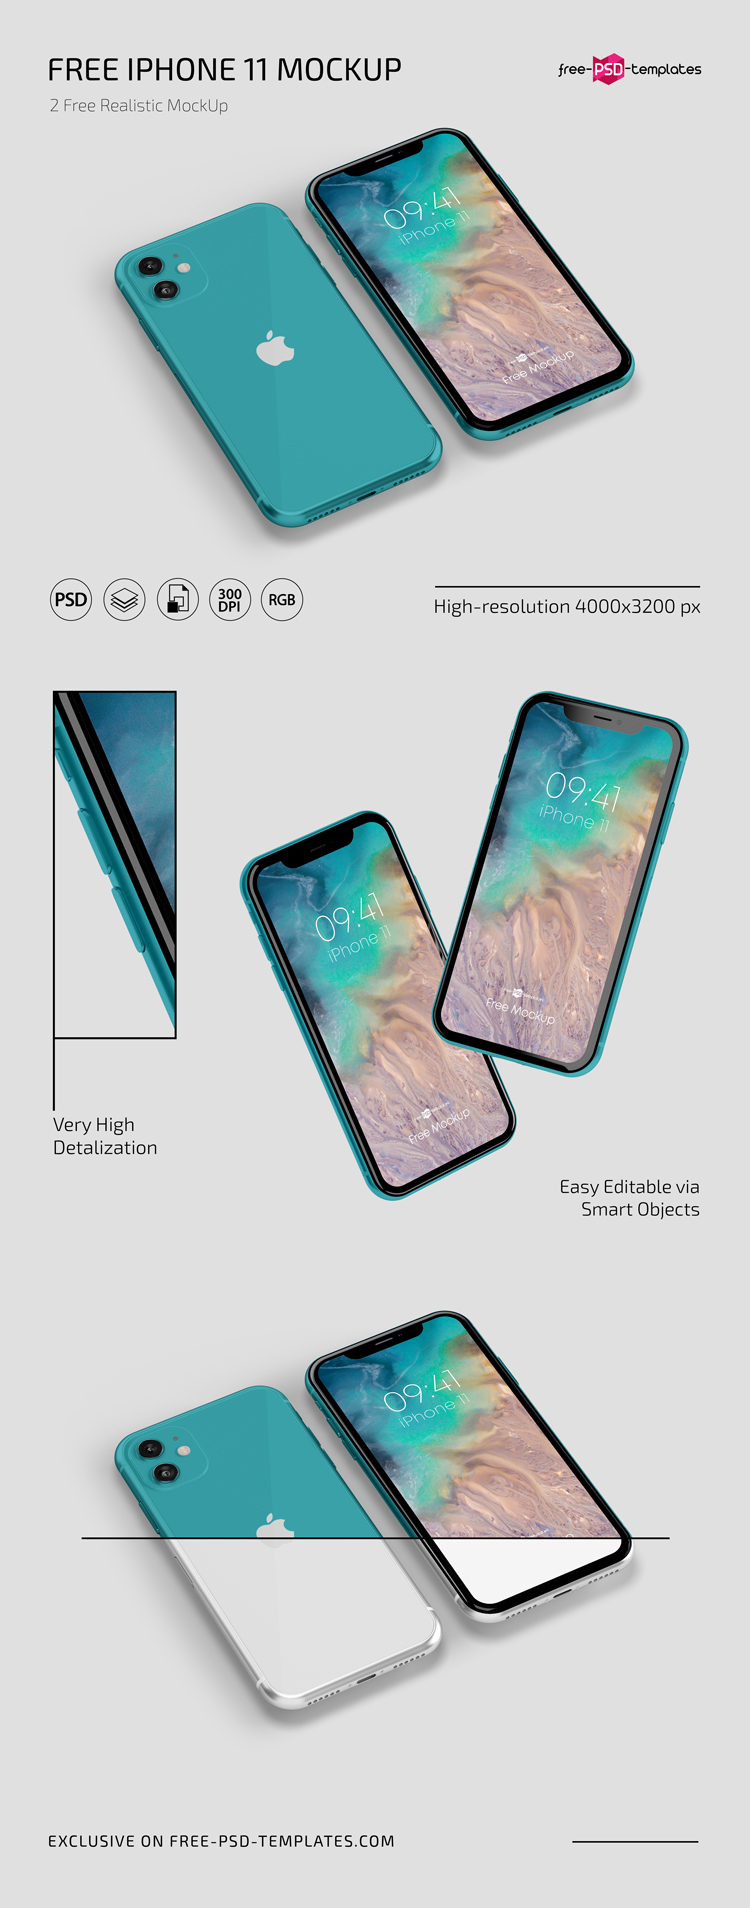 Free iPhone Mockups in PSD